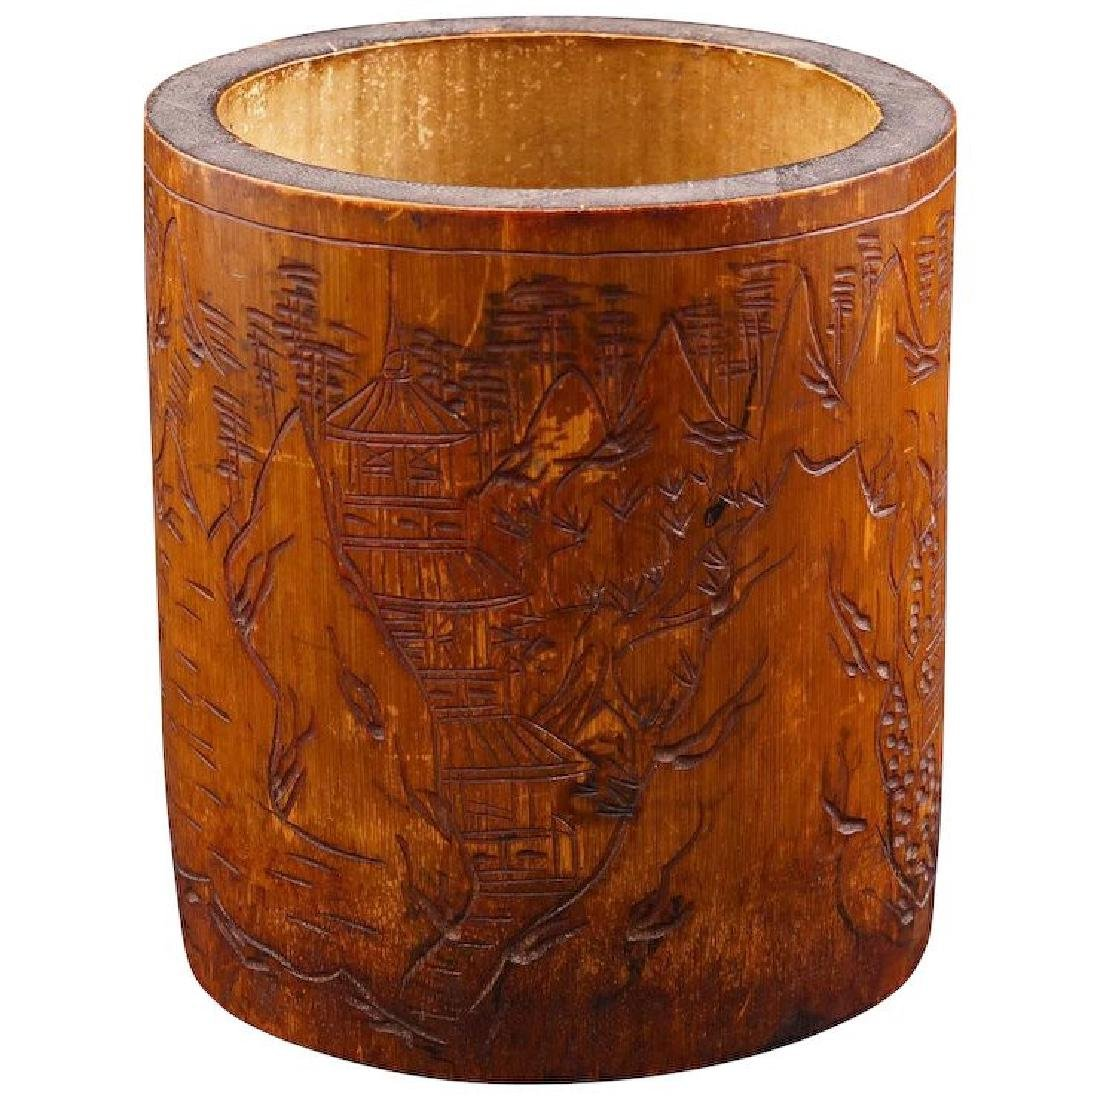 Chinese bamboo brush pot with incised carving early